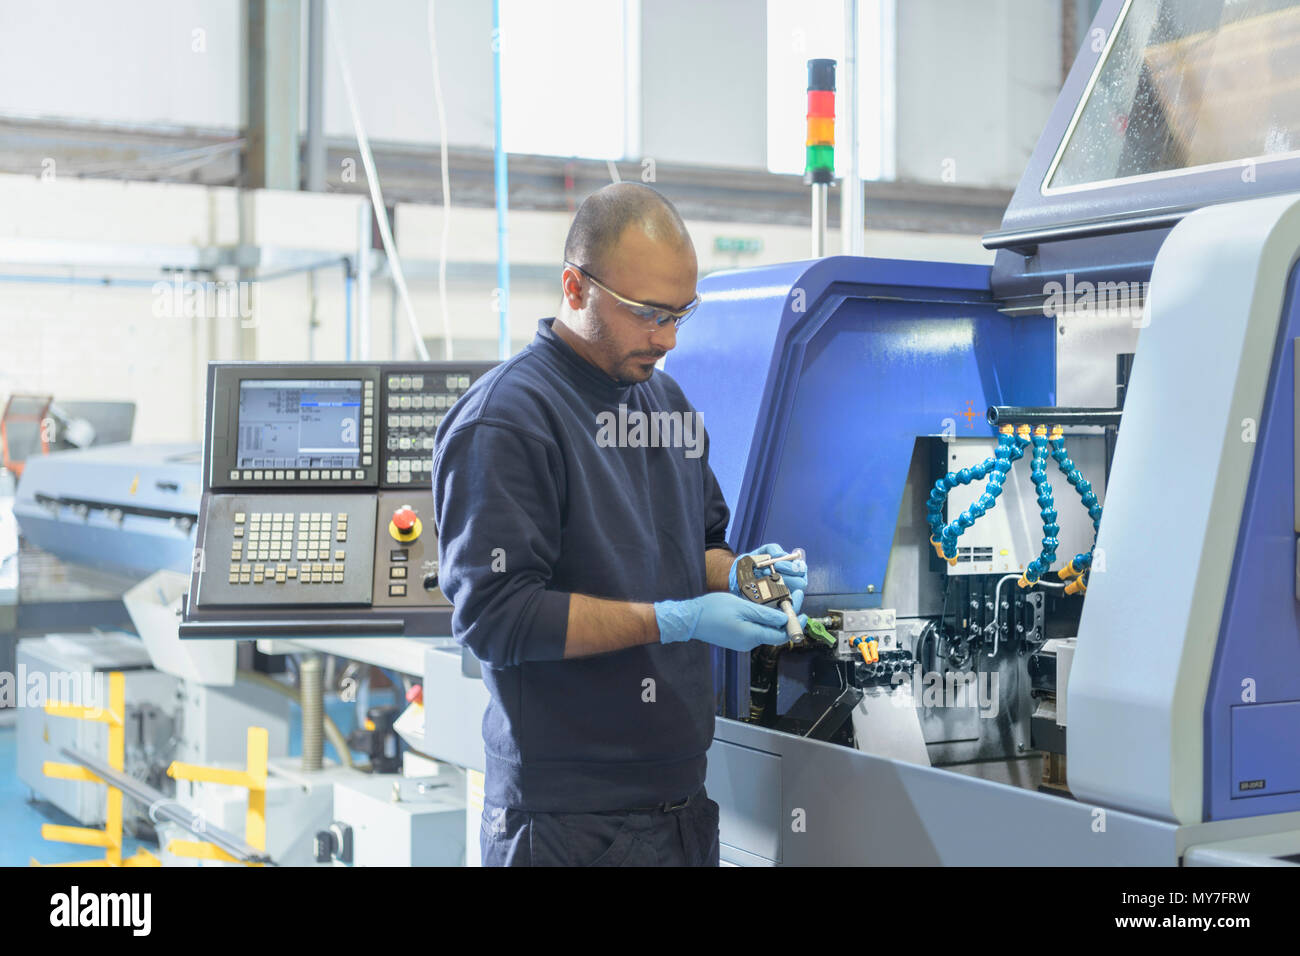 Engineer inspecting part for automatic lathe in engineering factory - Stock Image